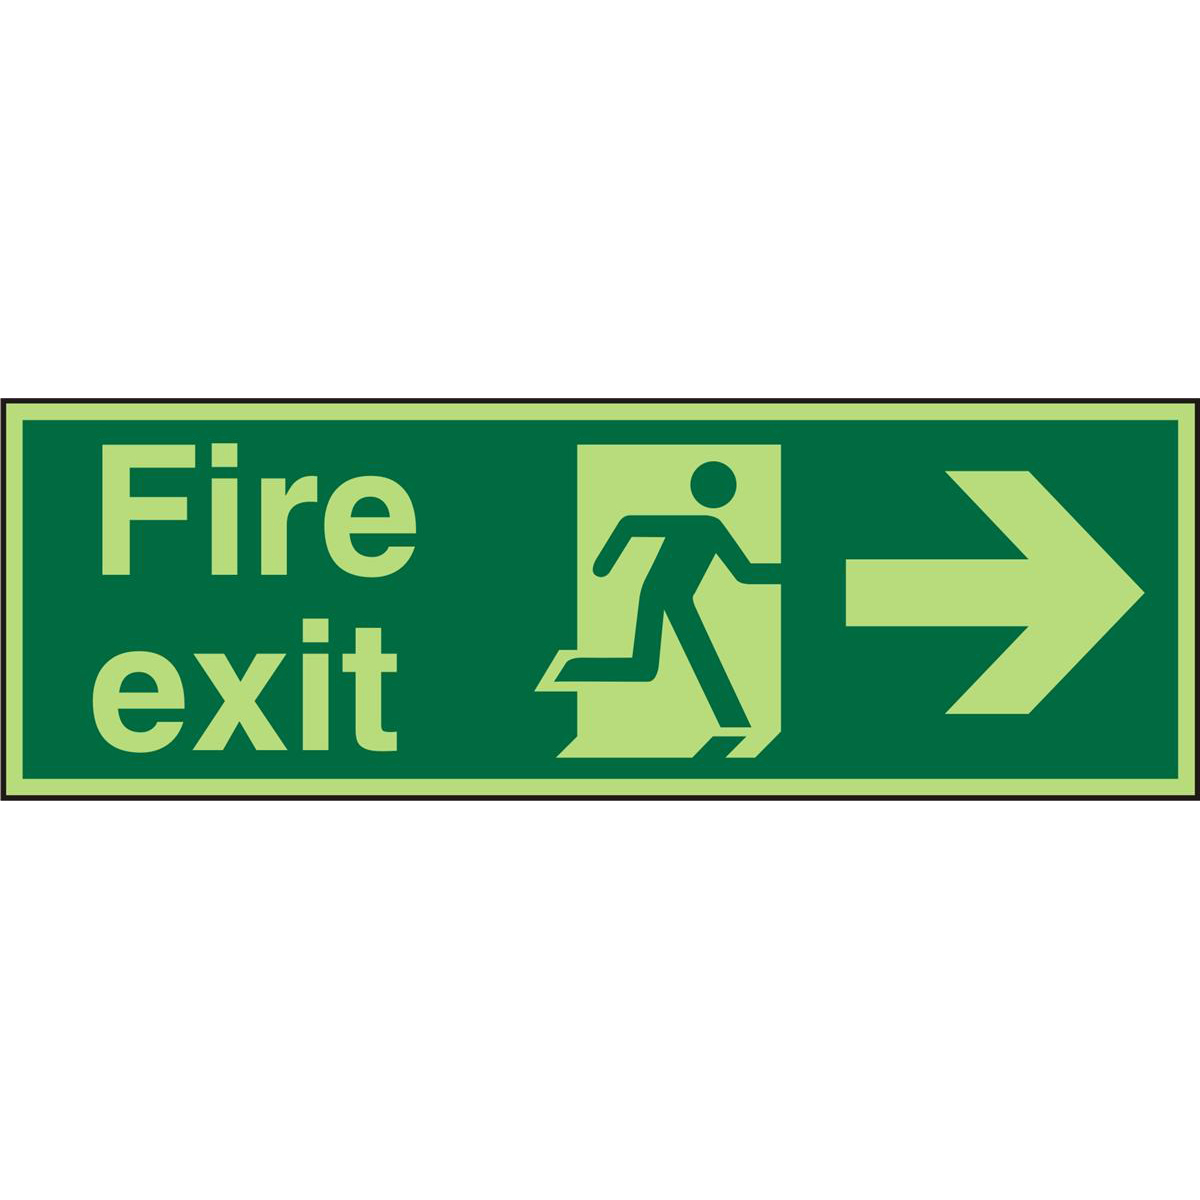 Photolum Sign 600x200 1mm FireExit Man Running&Arrow Right Ref PSP121SRP600x200 Up to 10 Day Leadtime